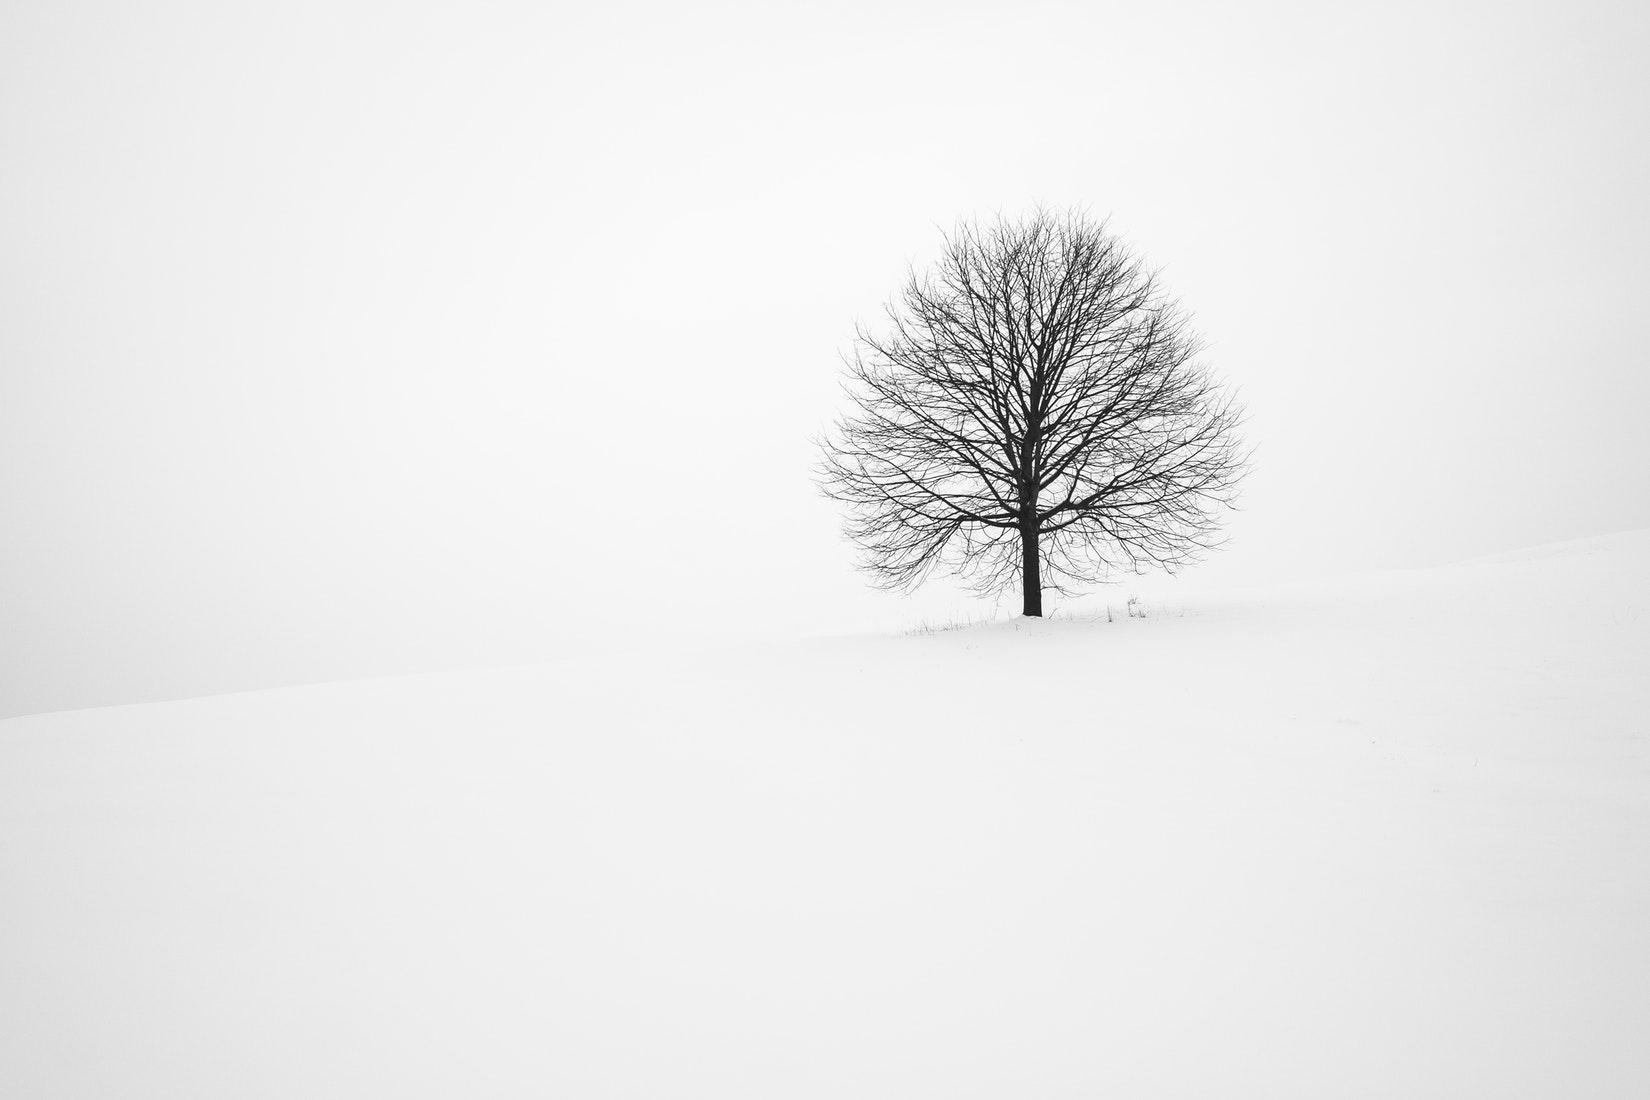 winter tree.jpeg